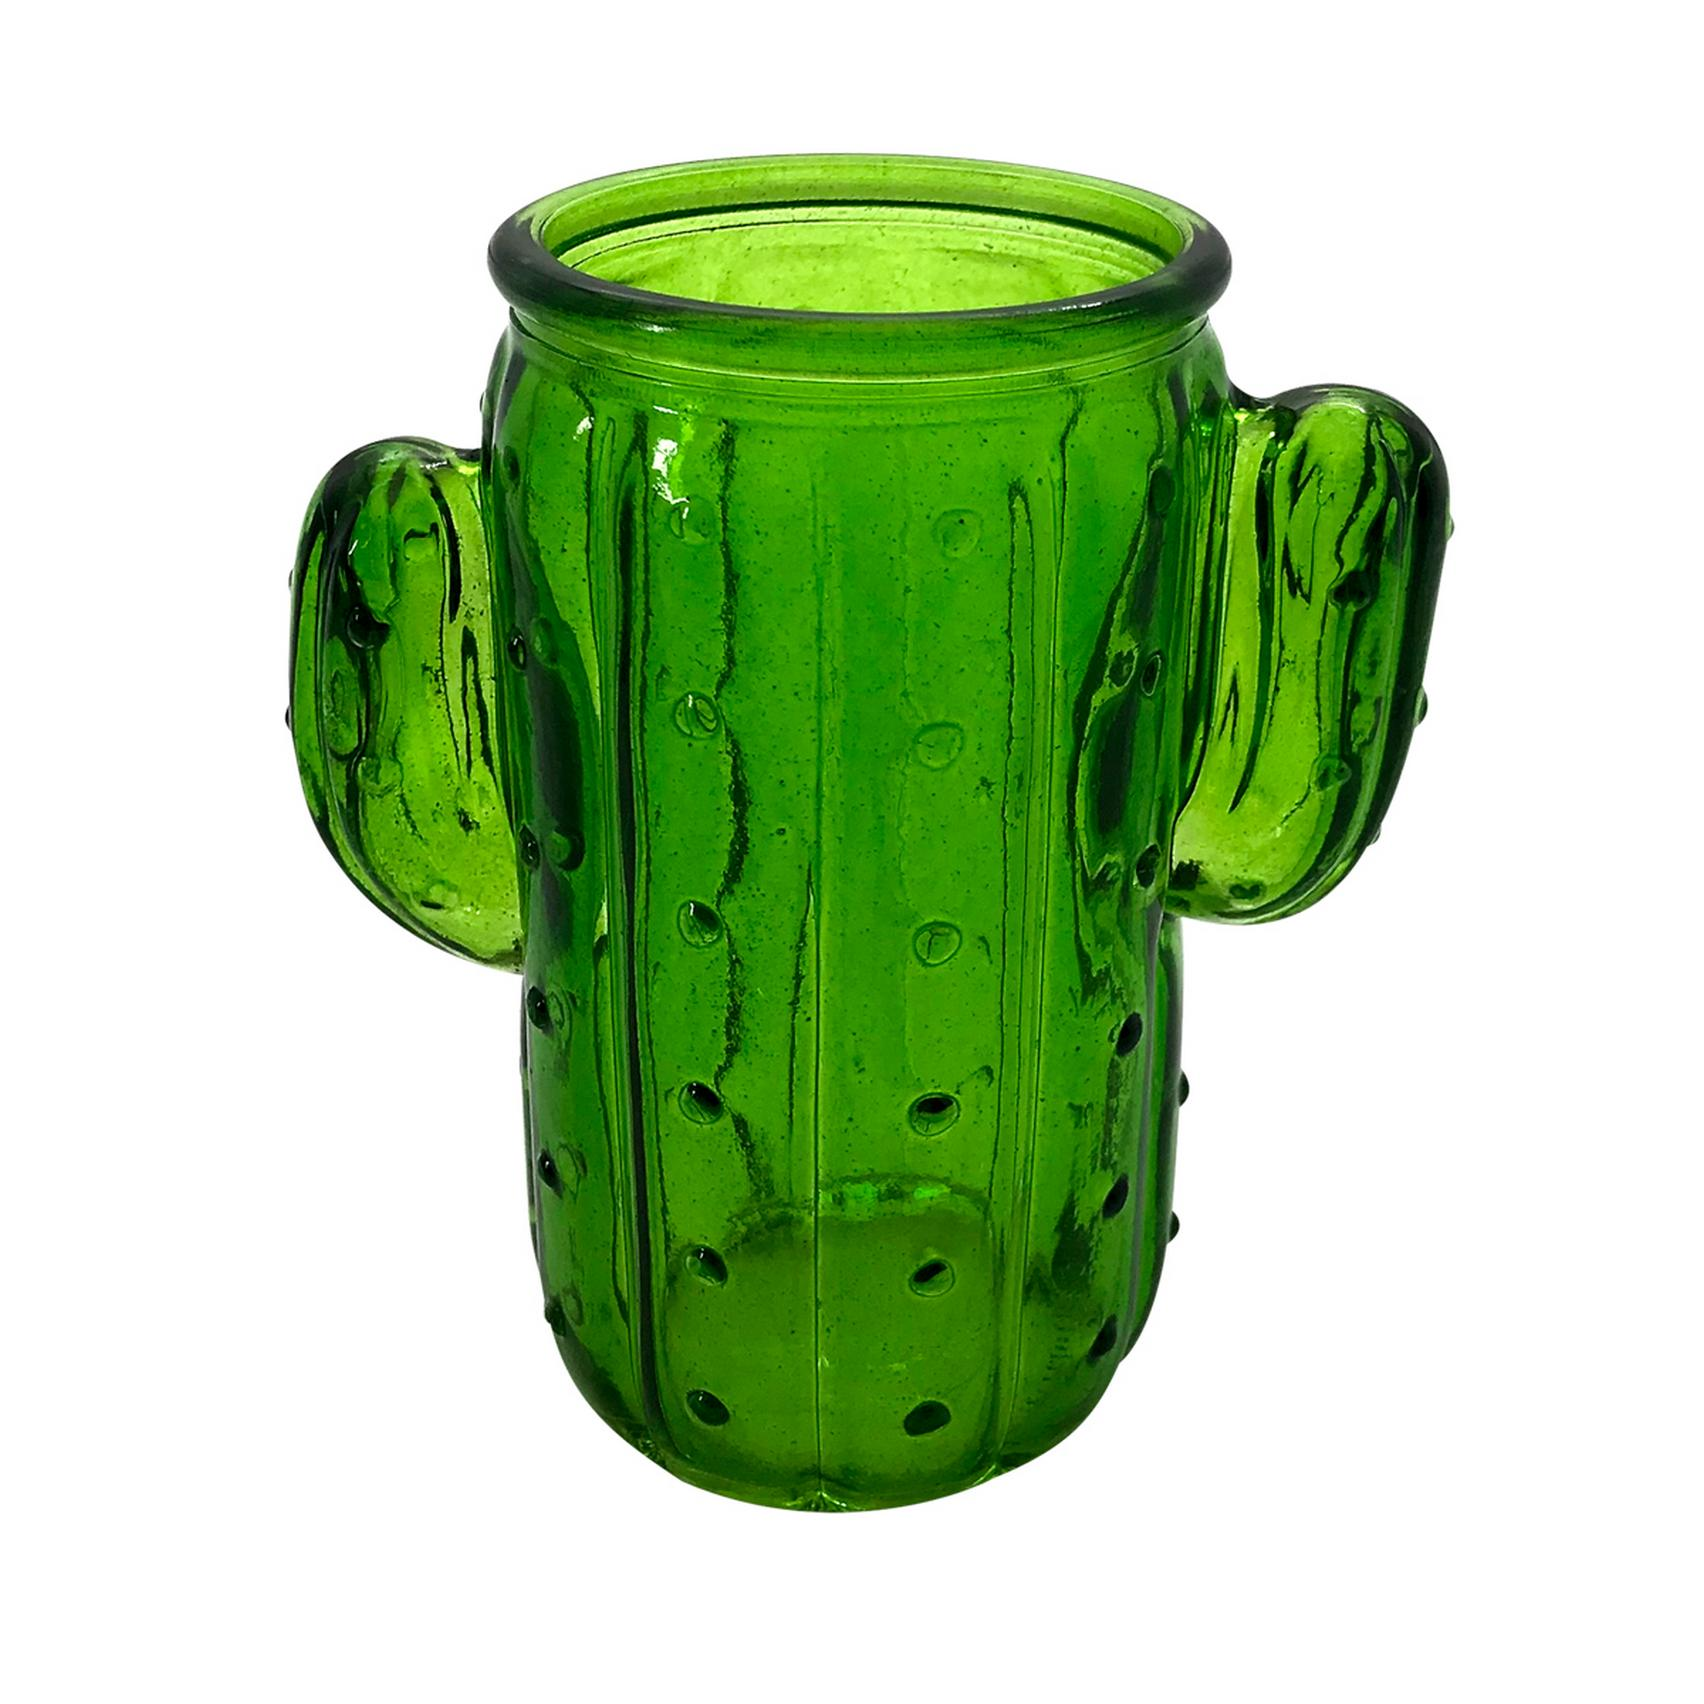 COPO DE VIDRO CACTUS VERDE WITH ARMS 11,5X7X12,7CM 350ML - URBAN 40990